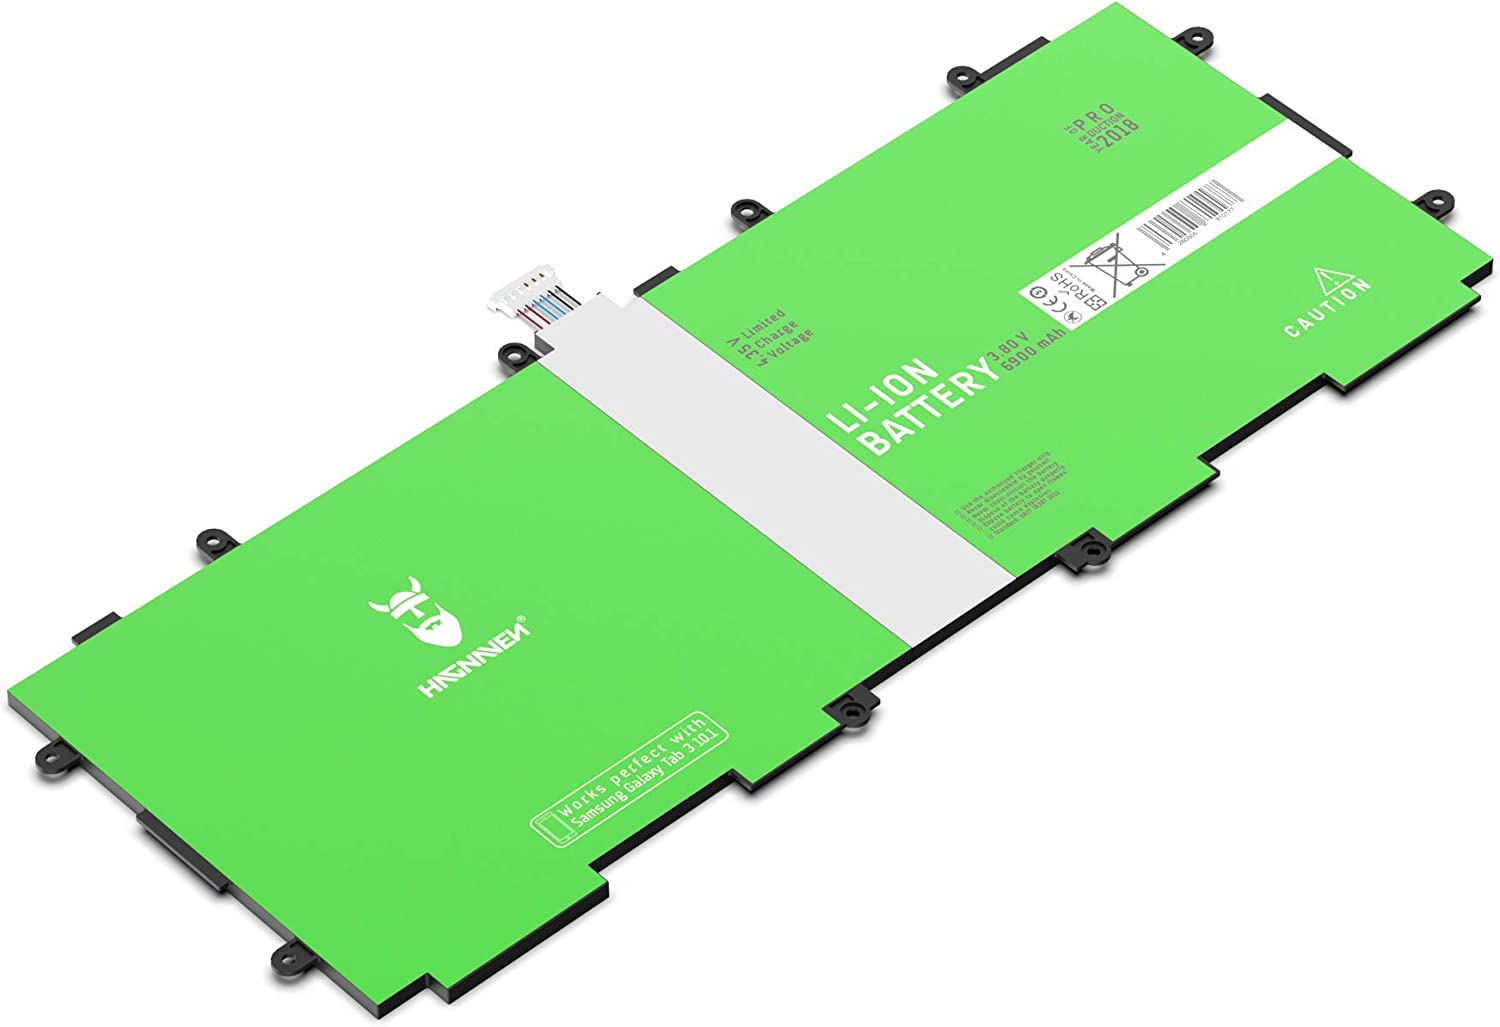 High-end quality accumulator cells Powerful spare battery Hagnaven/® Li-polymer battery for Galaxy S5 SM-G900F 2900 mAh unbeatable power and pure strength Replaces EB-BG900BBE